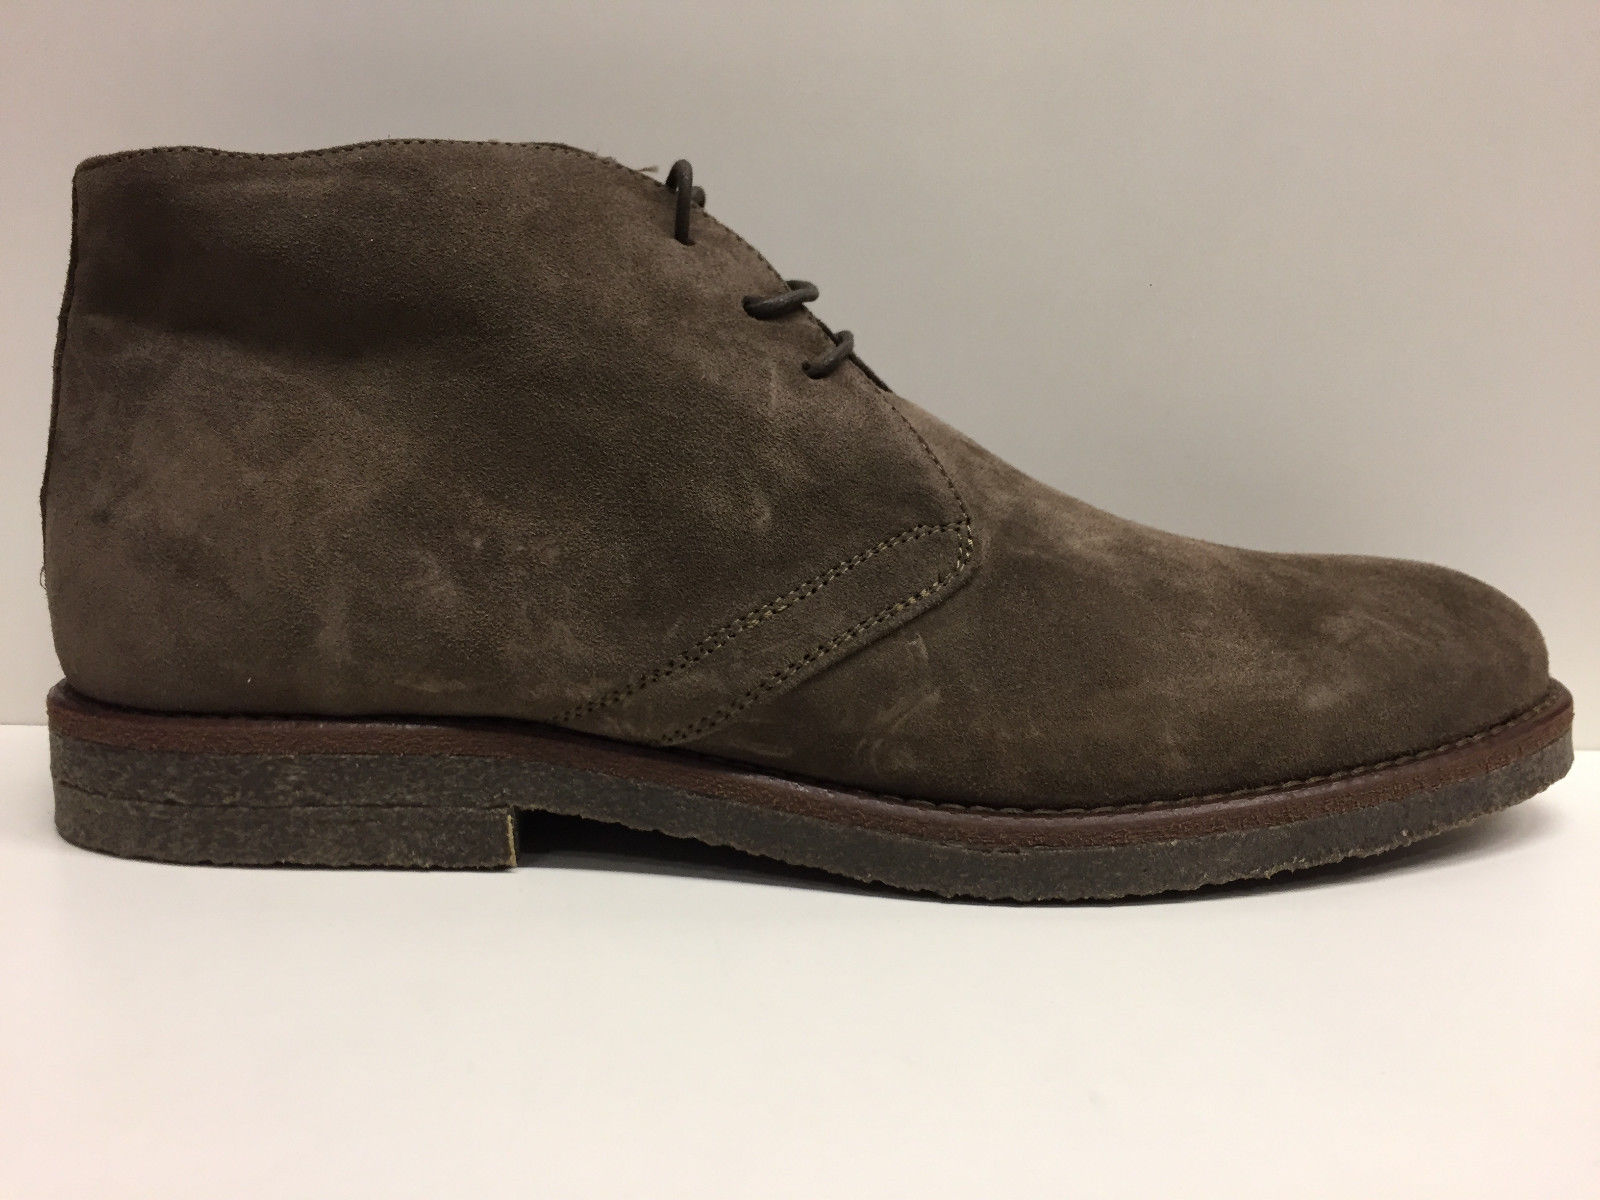 SCARPE CASUAL UOMO MELLUSO ORIGINALE U70056 PELLE SHOES LEATHER POLACCHINO AU/IN